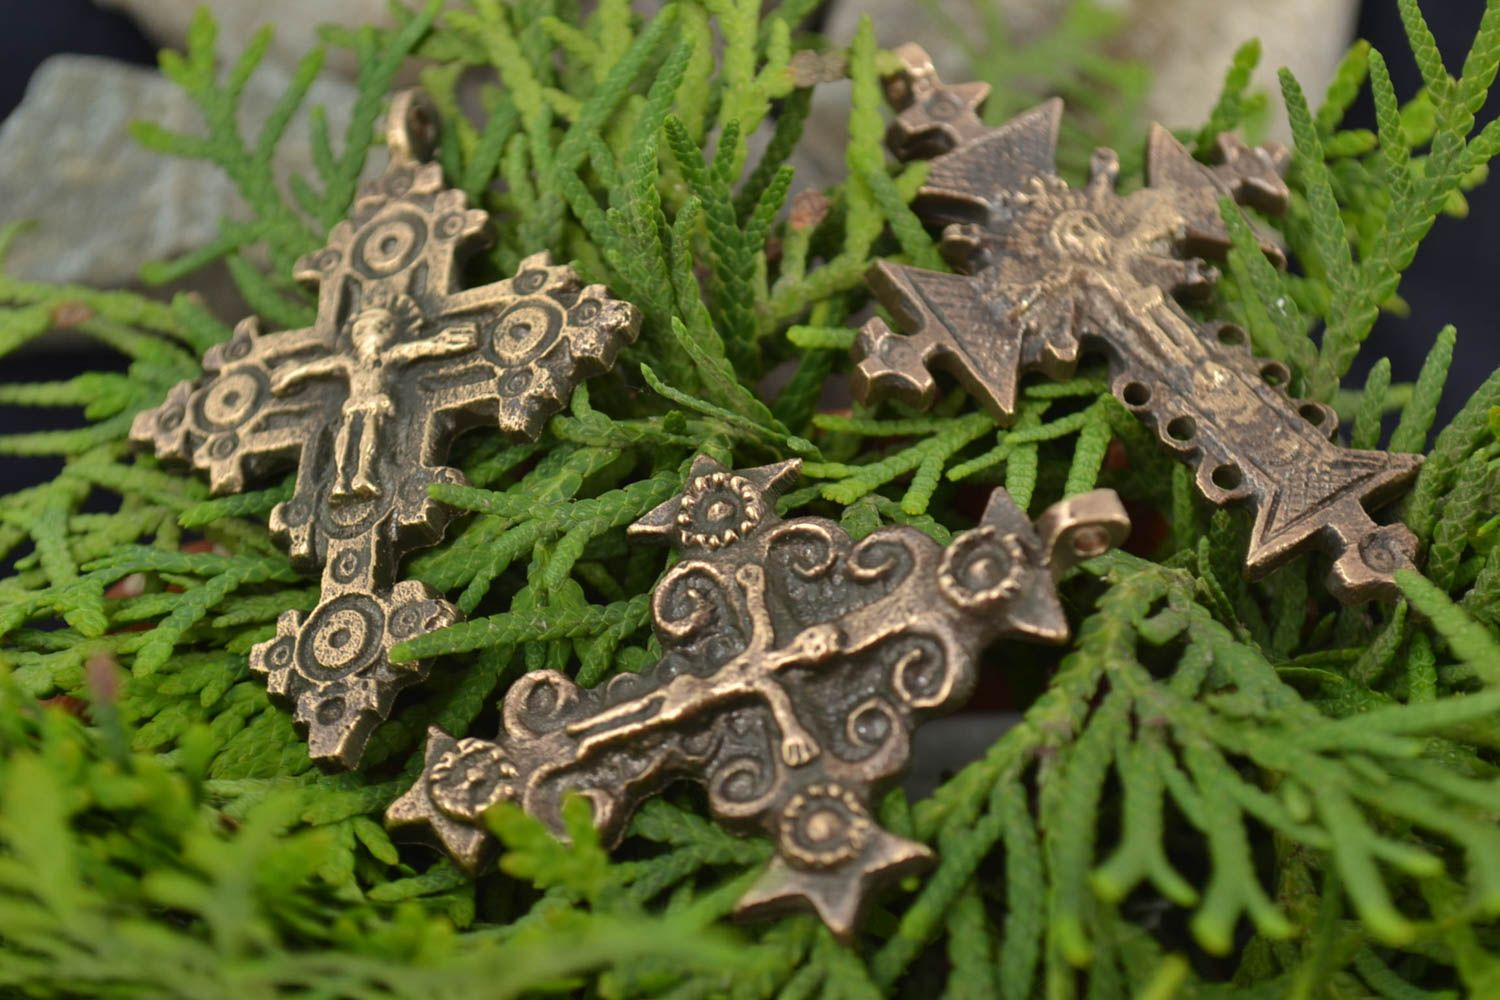 next to skin crosses Set of 3 handmade fancy cross pendants cast of bronze of different shapes  - MADEheart.com